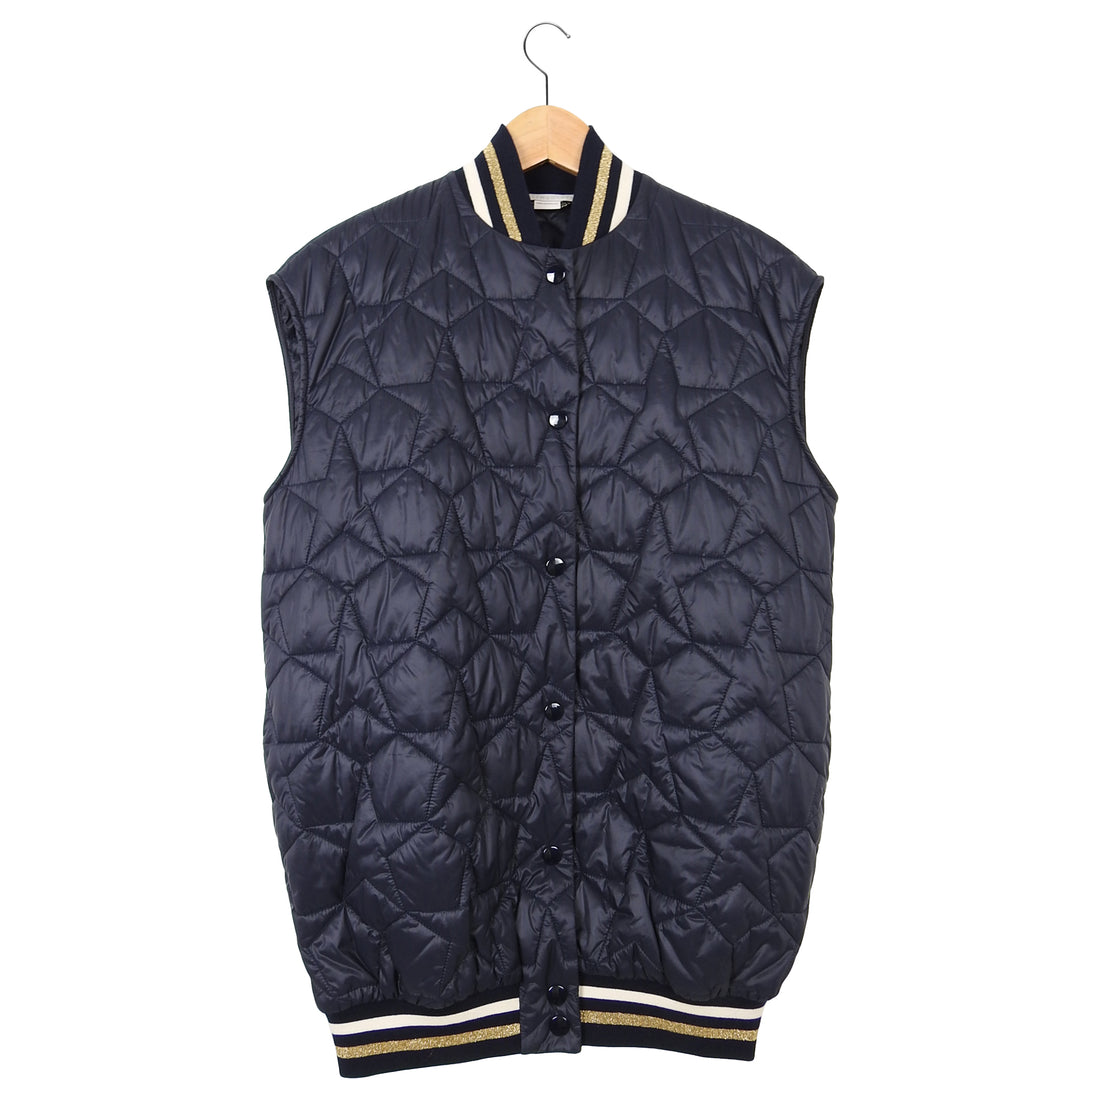 Stella McCartney Navy Quilted Sleeveless Bomber Jacket – M